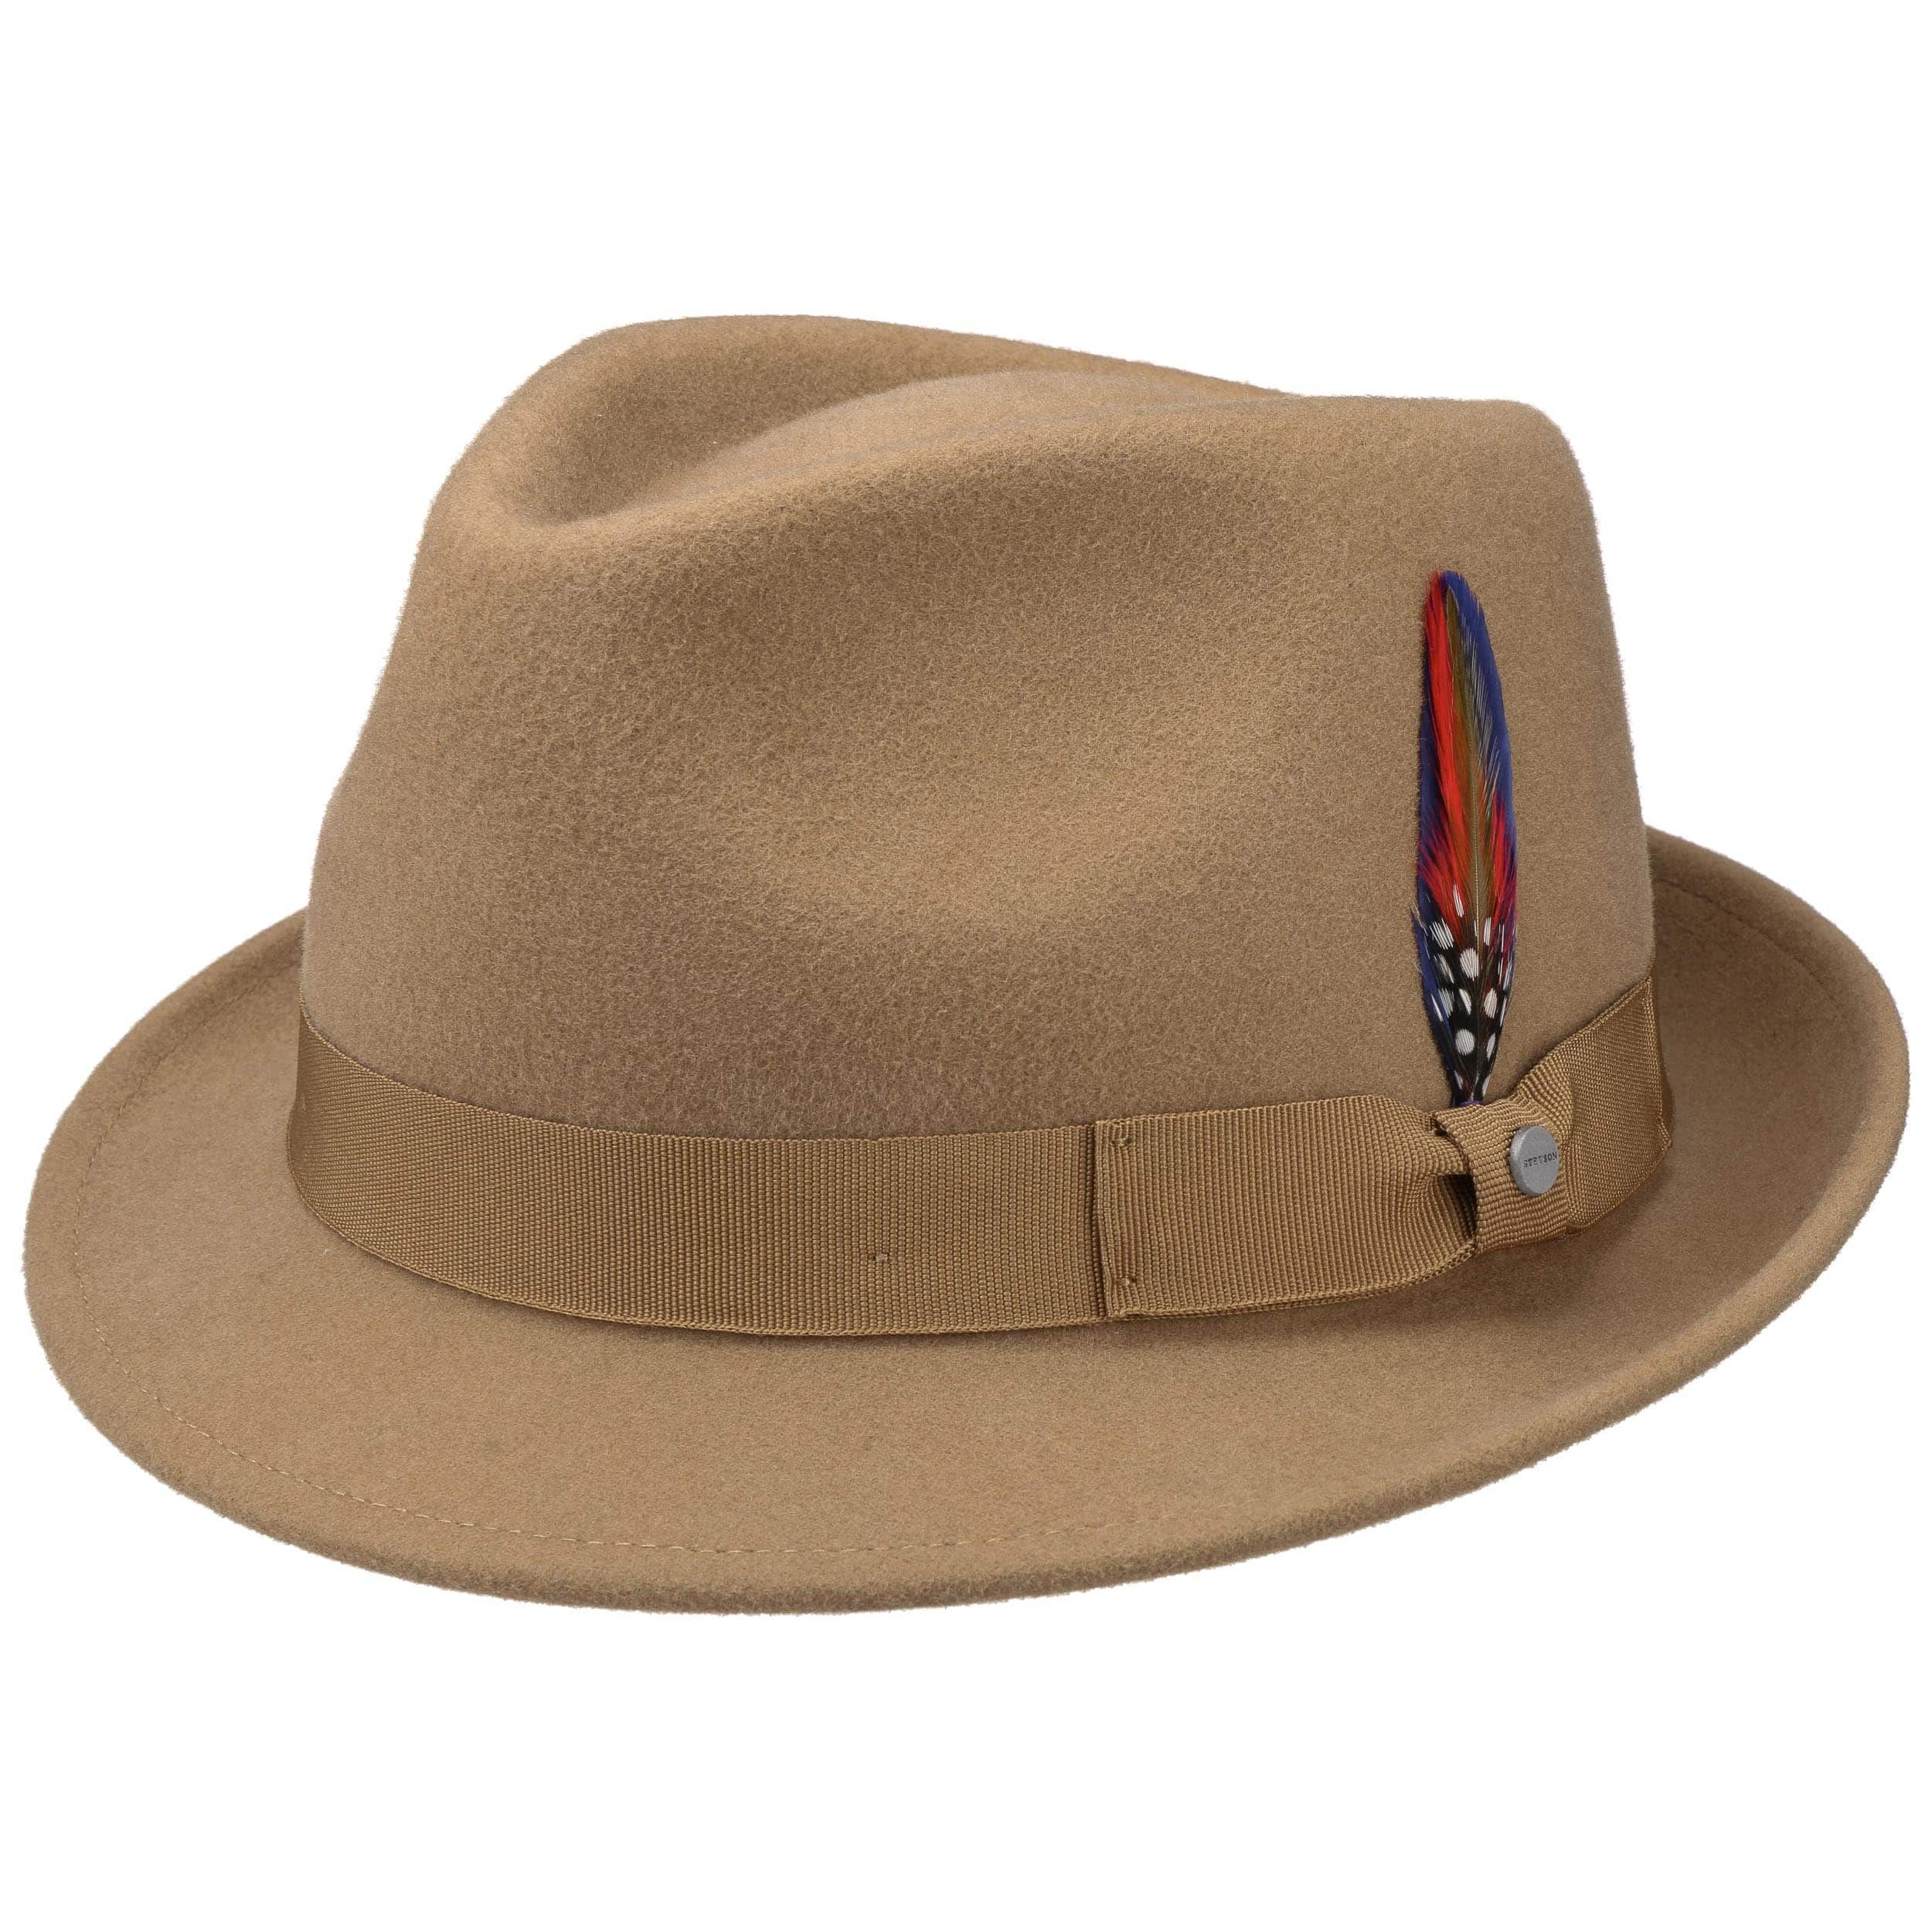 Richmond Trilby beige